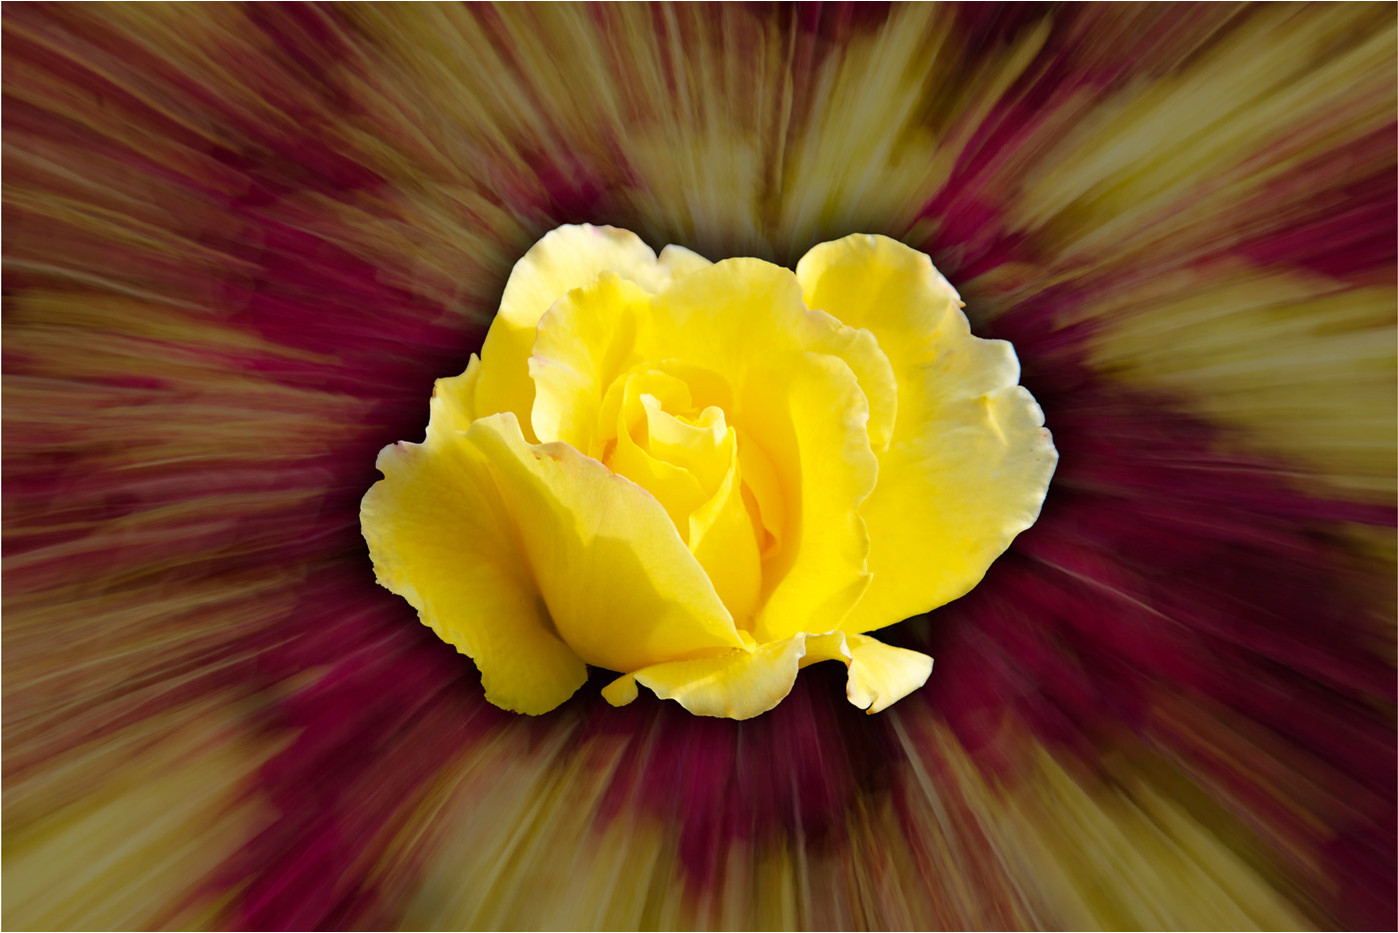 17 YELLOW ROSE by Dave Brooker